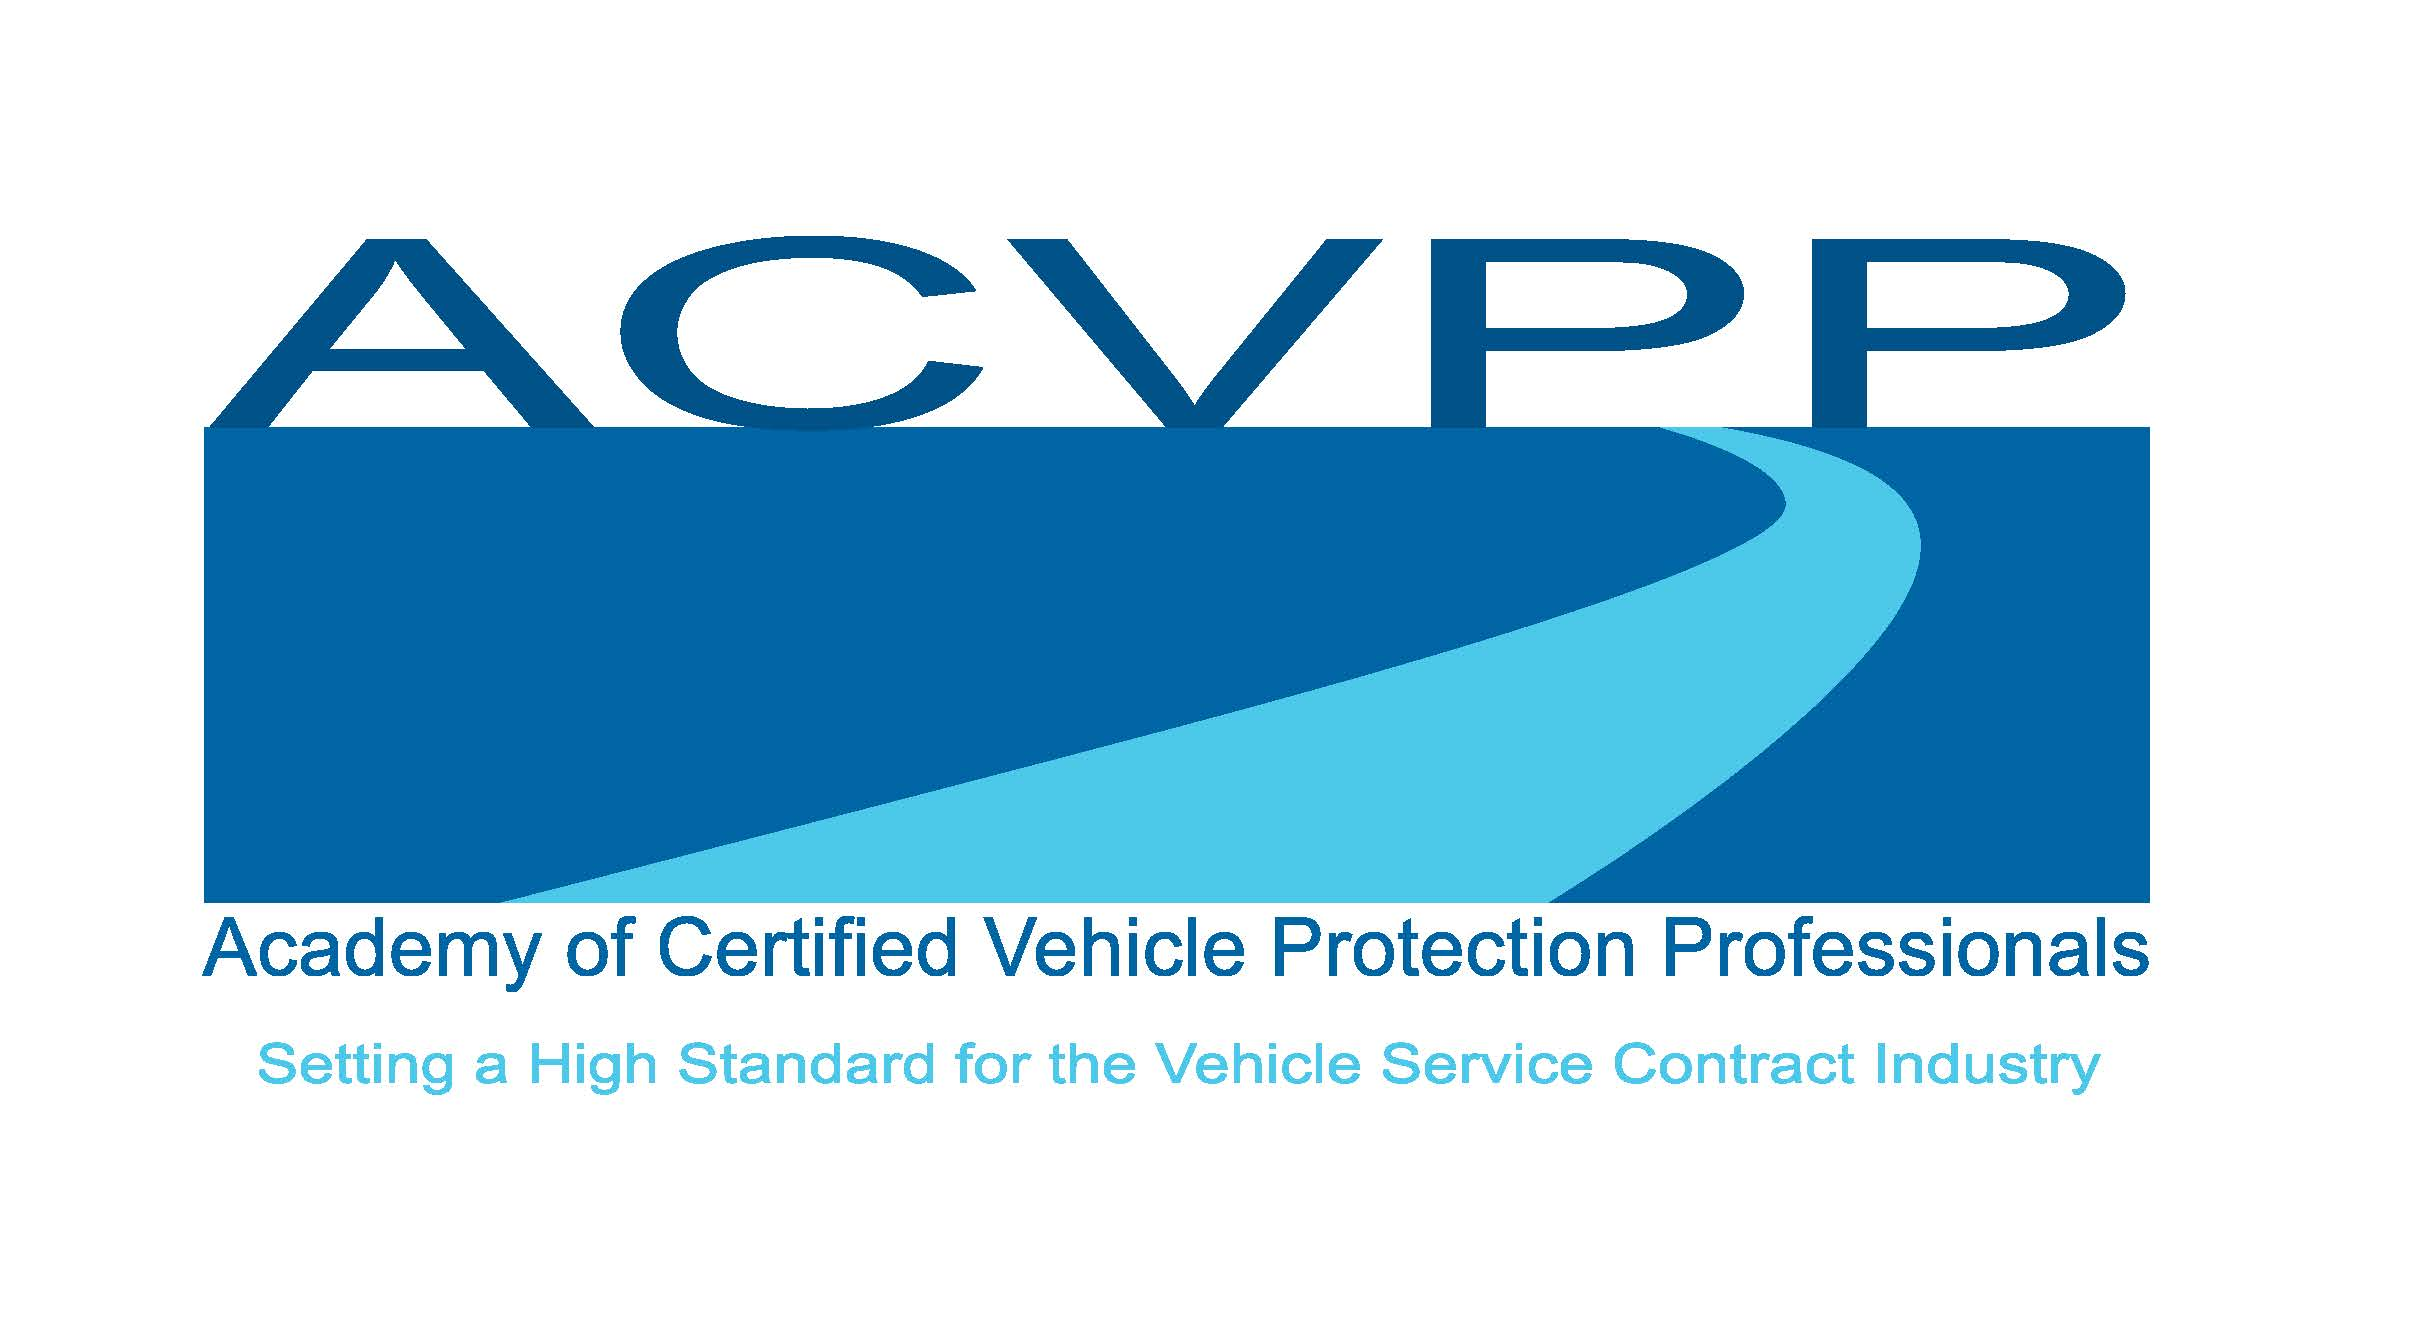 Extended Warranty Leader Protect My Car Obtaining Acvpp Certification For  All Employees